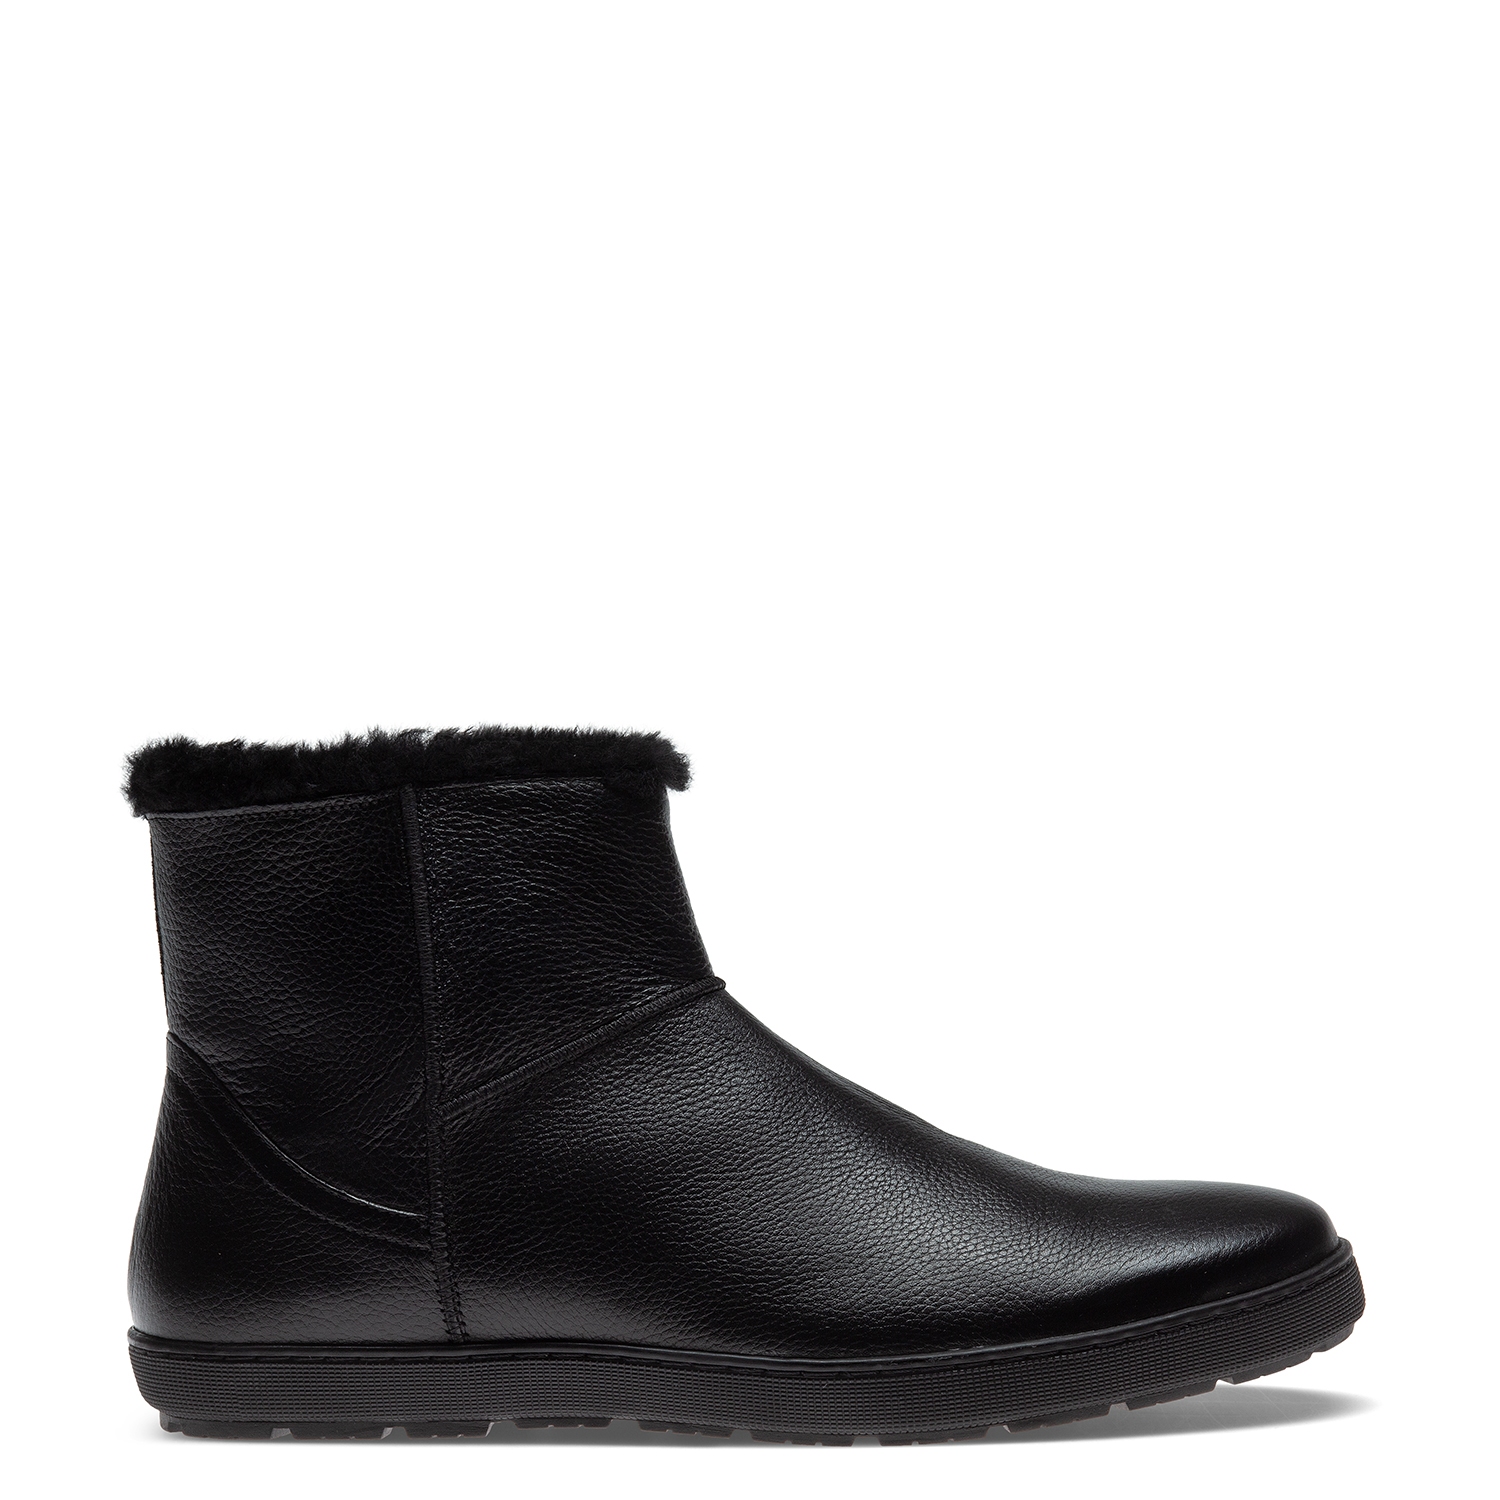 Women's ankle boots PAZOLINI OO-VDM9-1